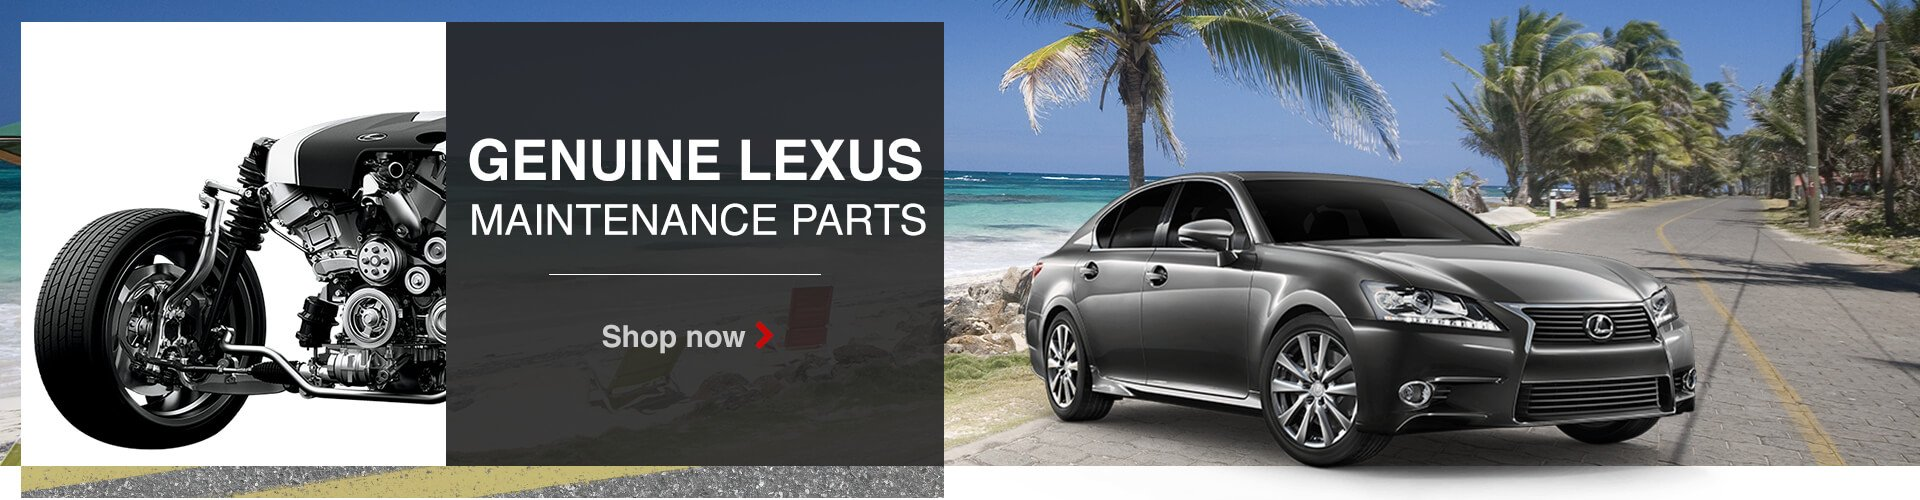 Genuine Lexus Maintenance Parts